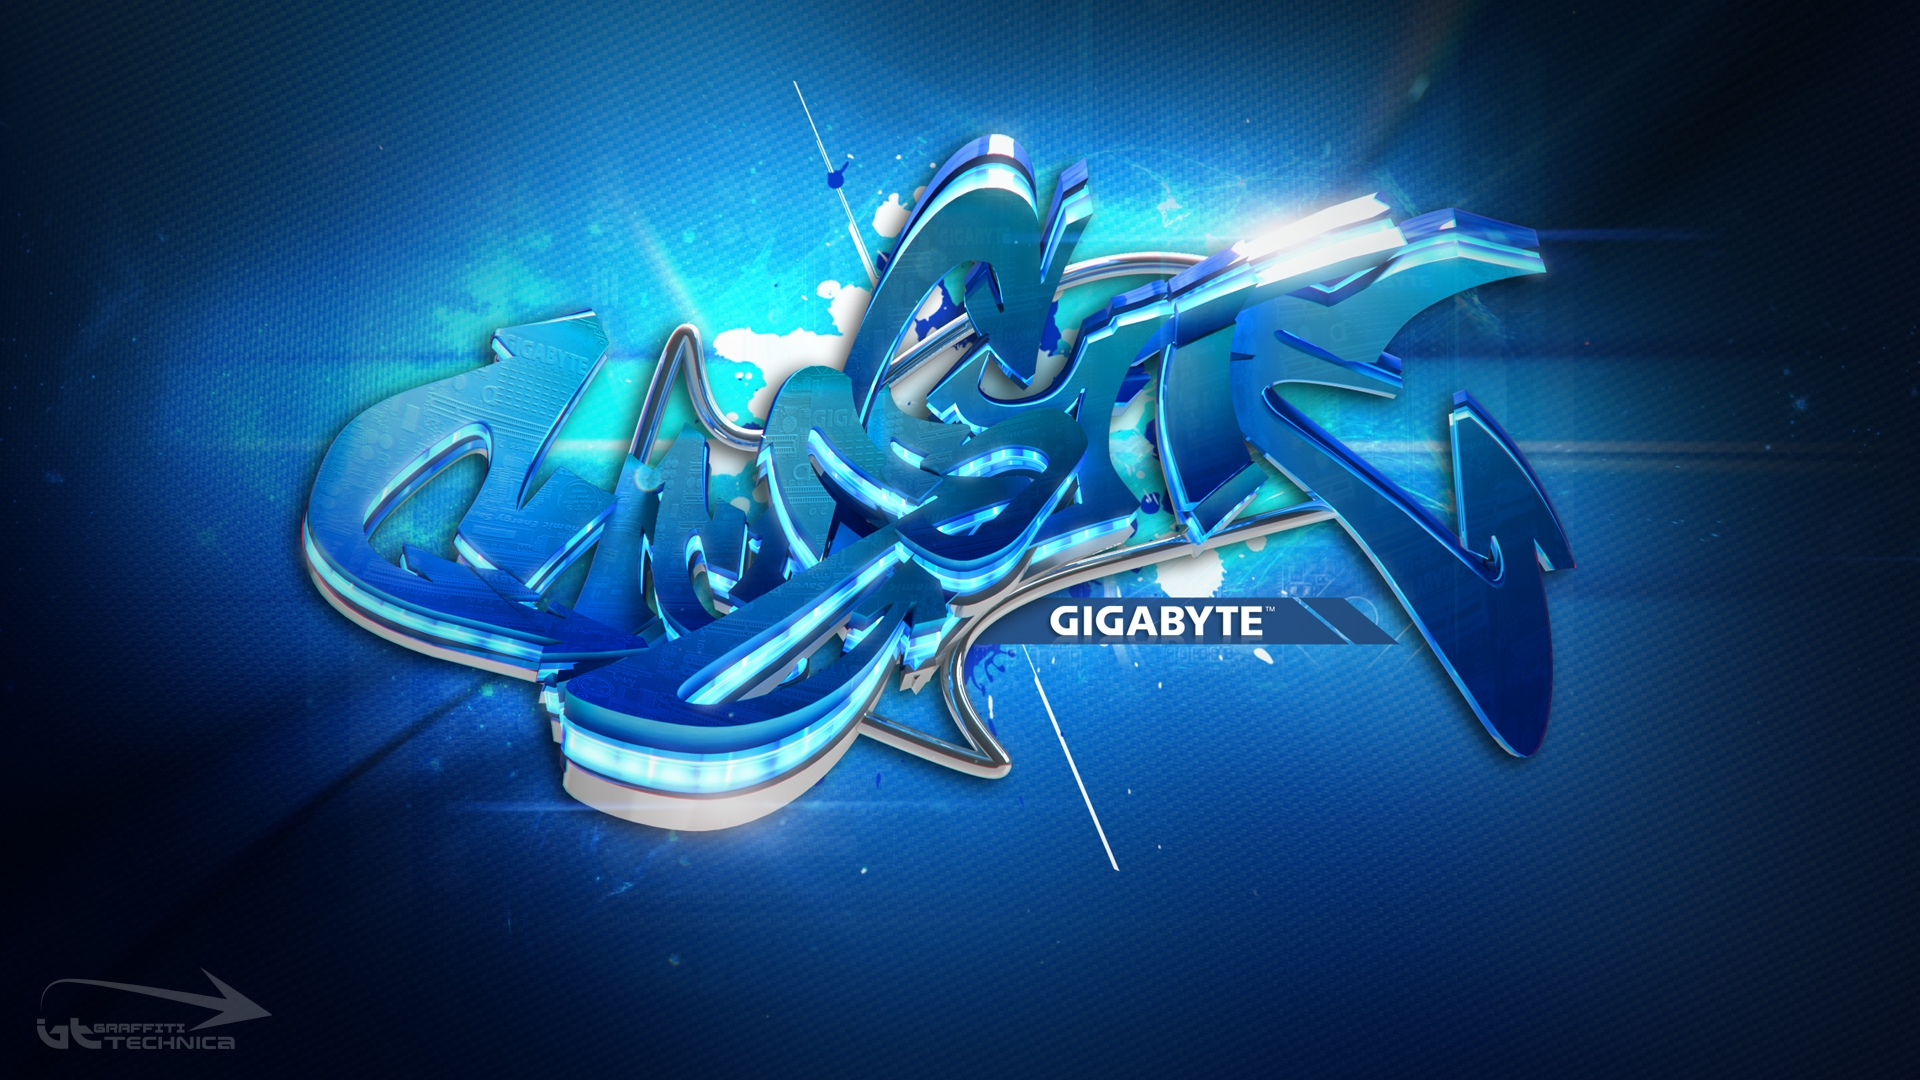 gigabyte computer wallpapers myspace - photo #3